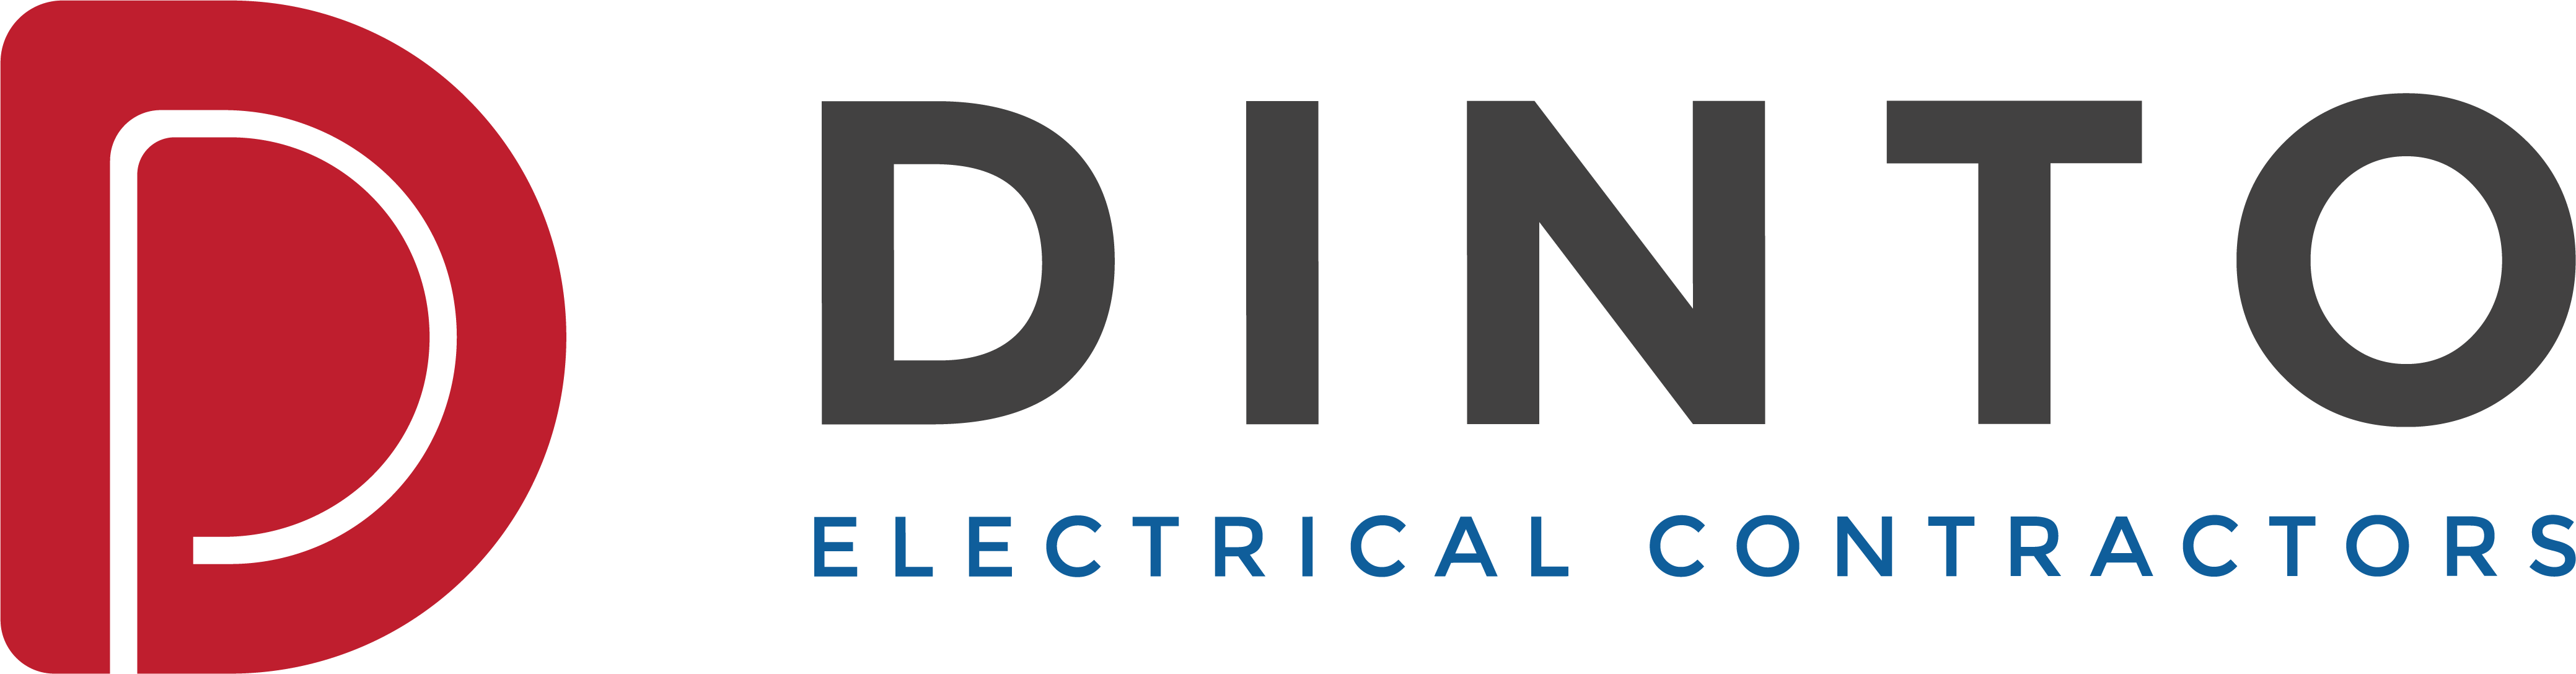 Dinto Electrical Contractors